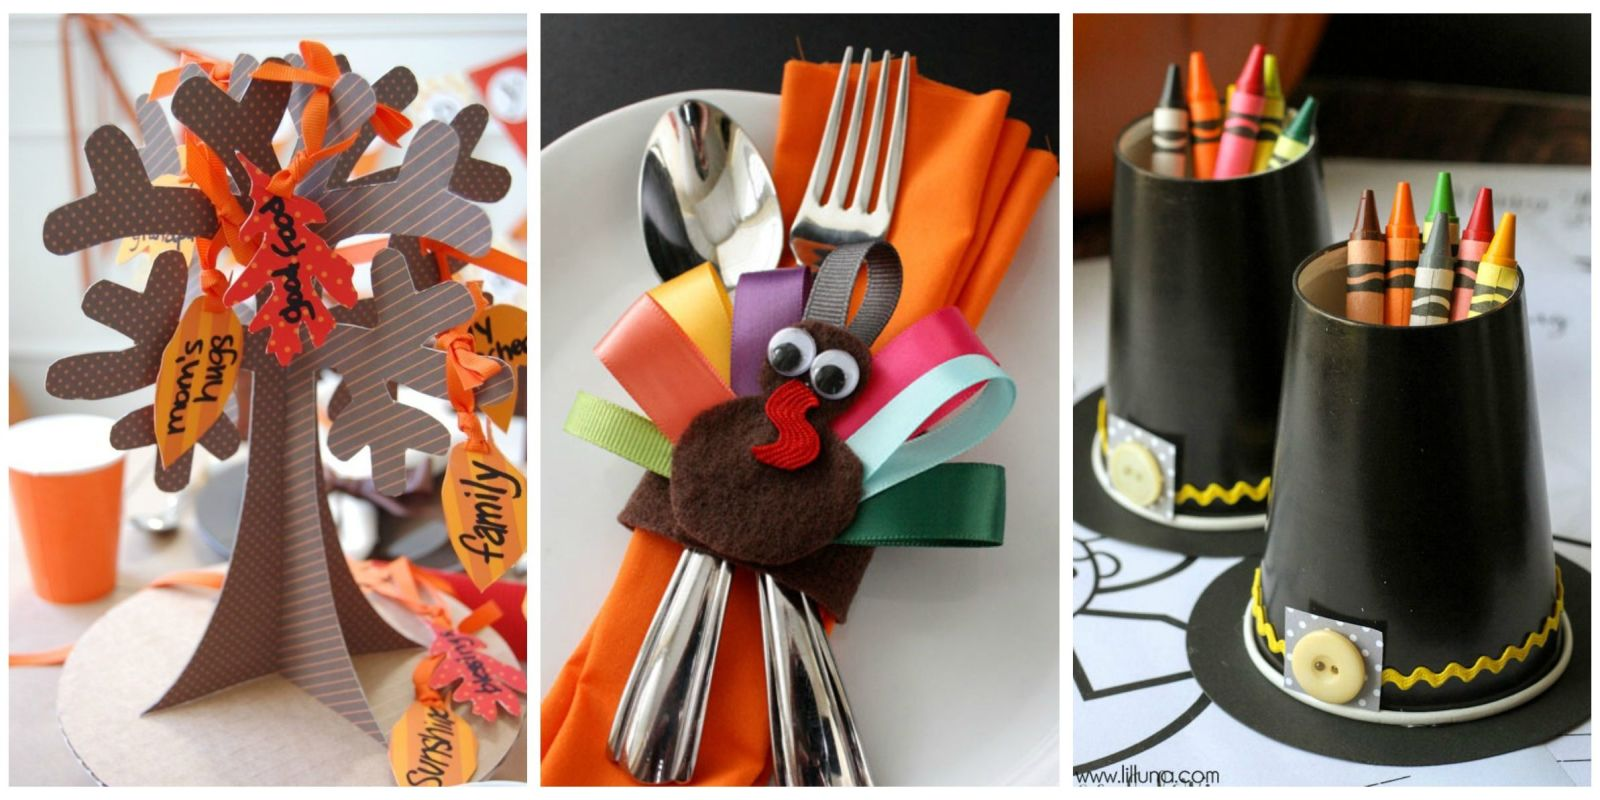 15 Ways to Make the Kids' Table at Thanksgiving Dinner More Fun